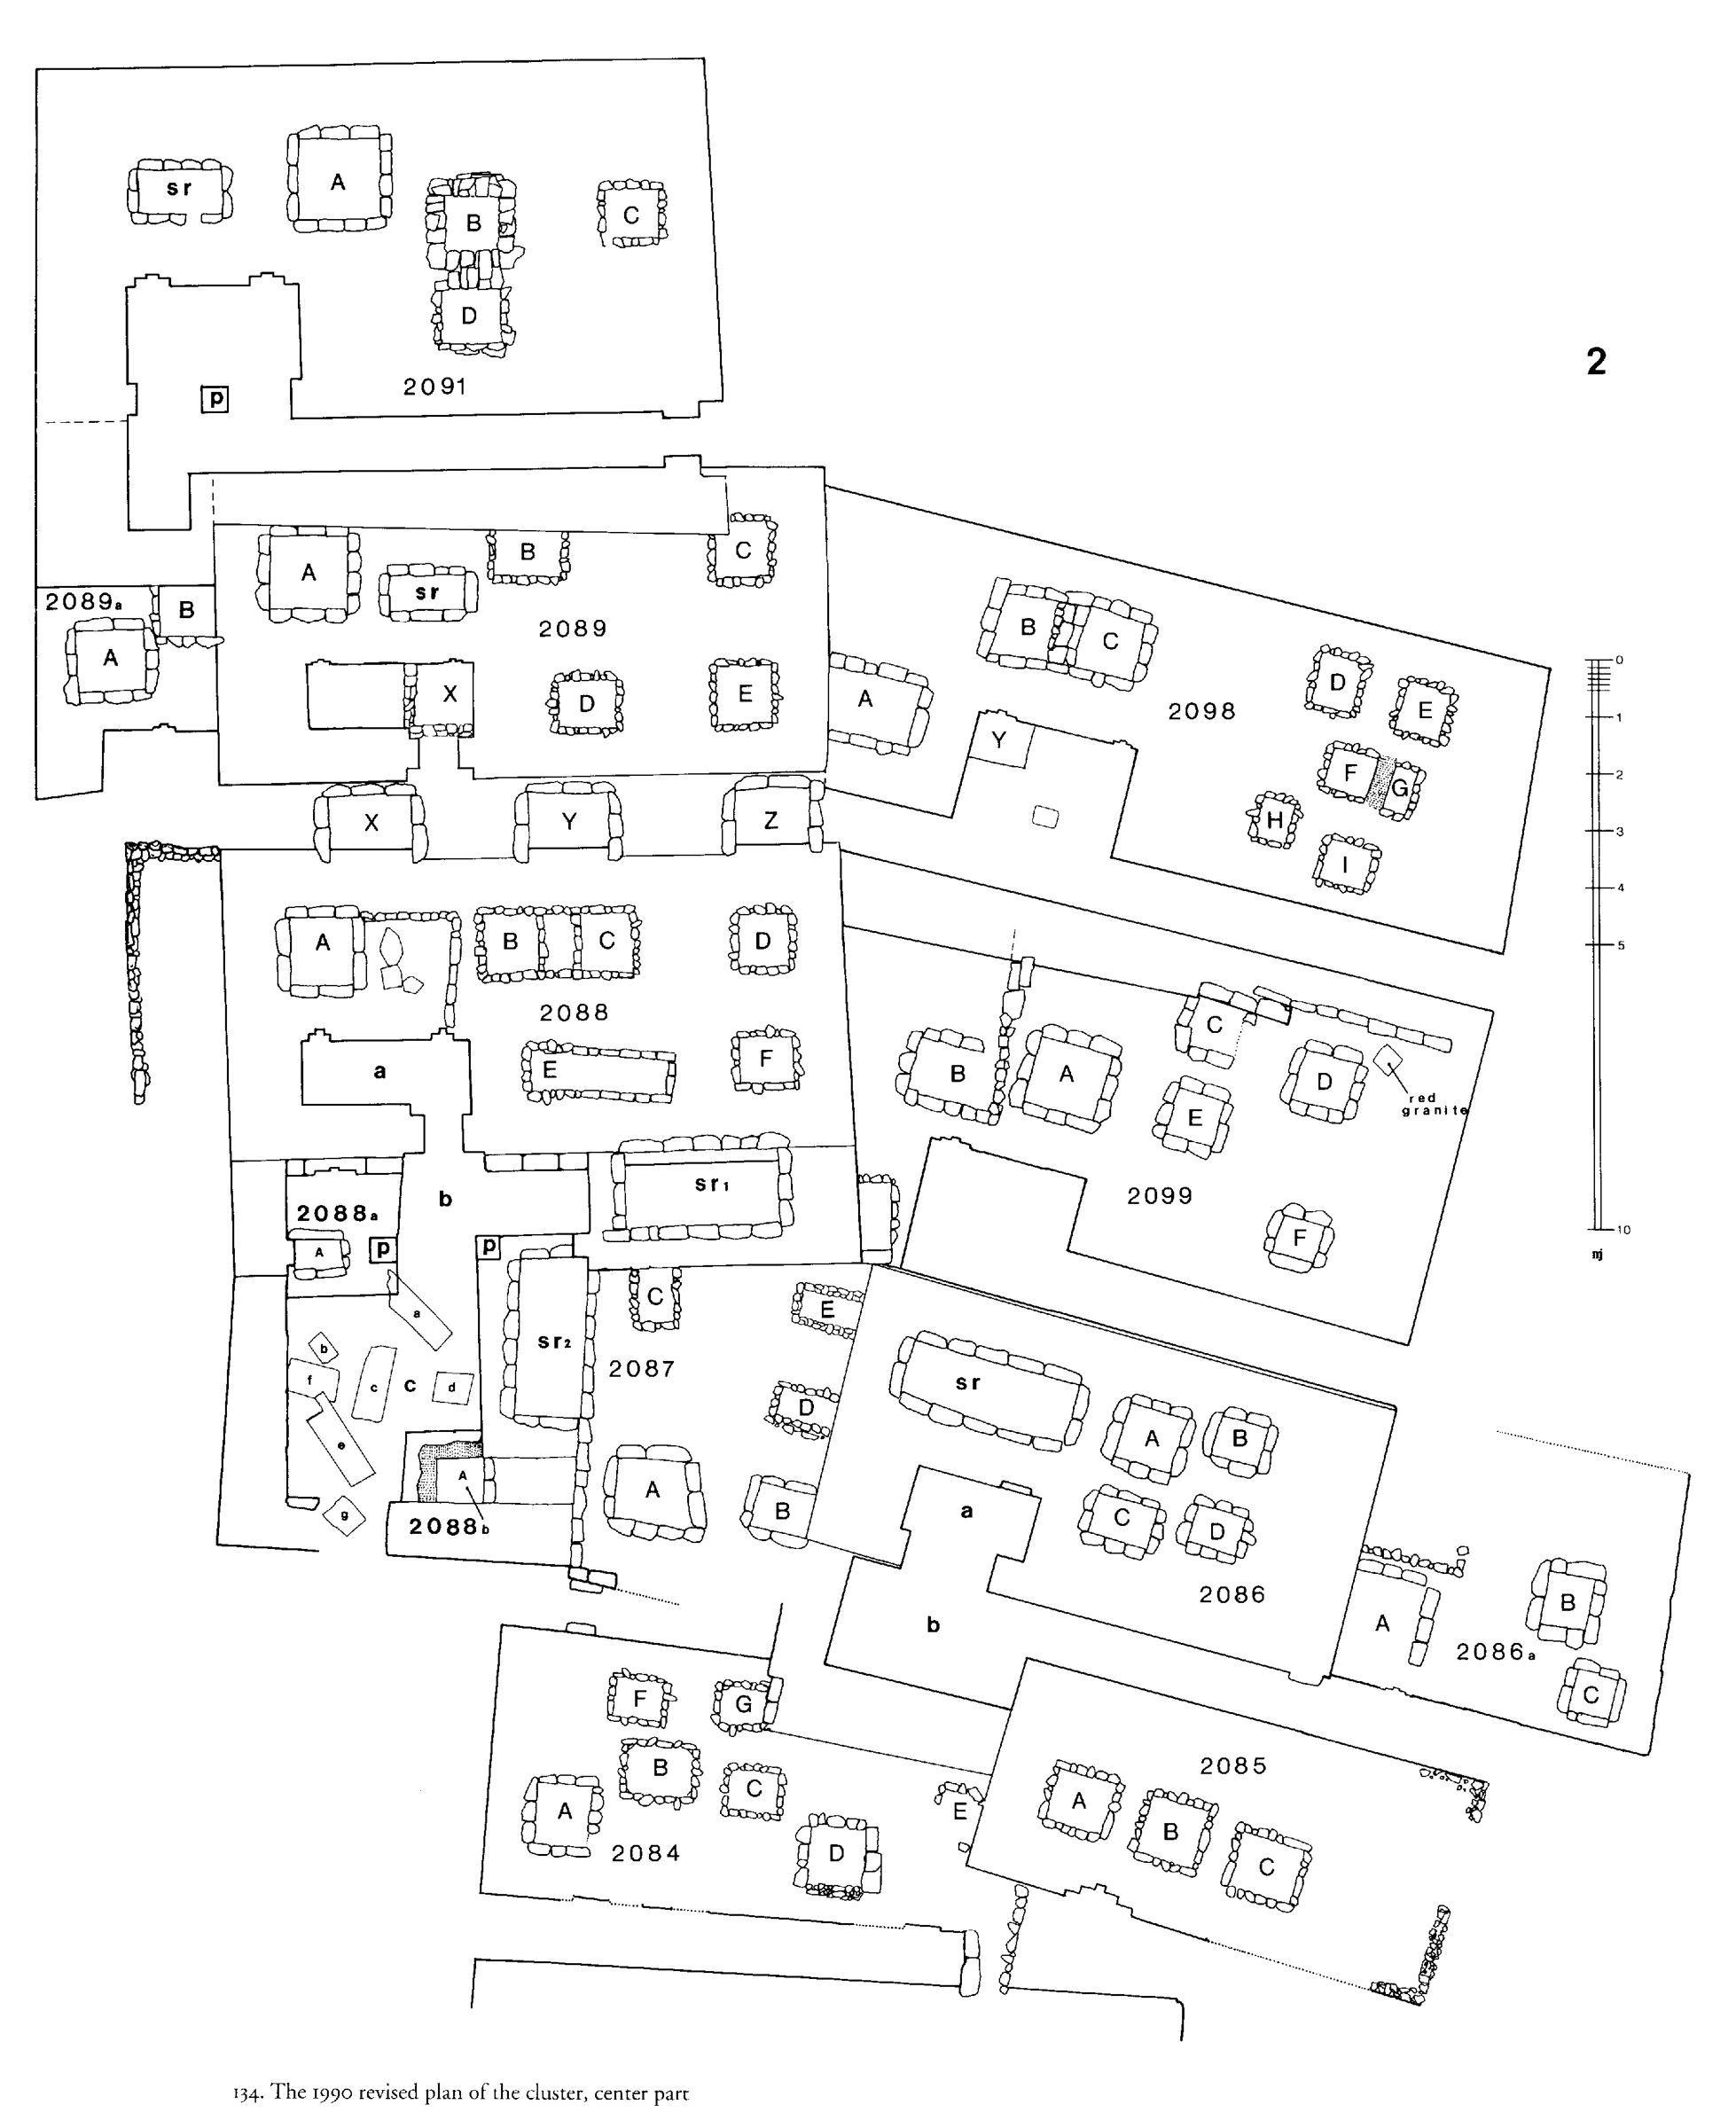 Maps and plans: Partial plan of Western Cemetery: G 2084, G 2085, G 2086, G 2087, G 2088, G 2089, G 2091, G 2098, G 2099